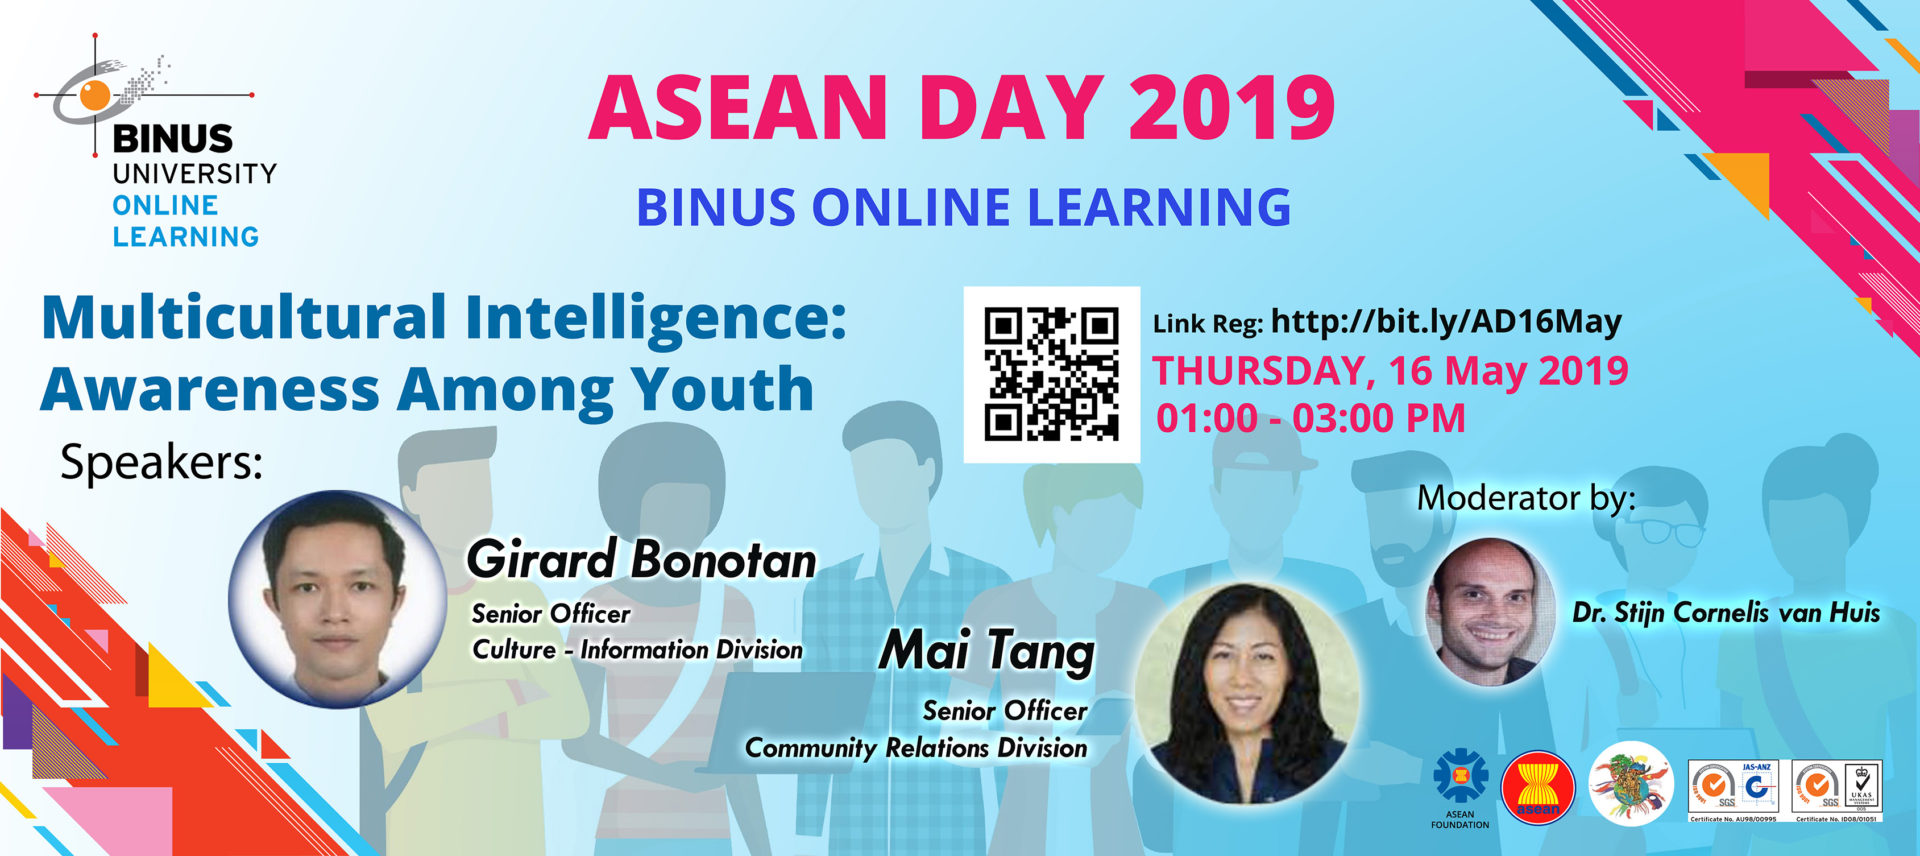 ASEAN Day 2019 – Multicultural Intelligence: Awareness Among Youth